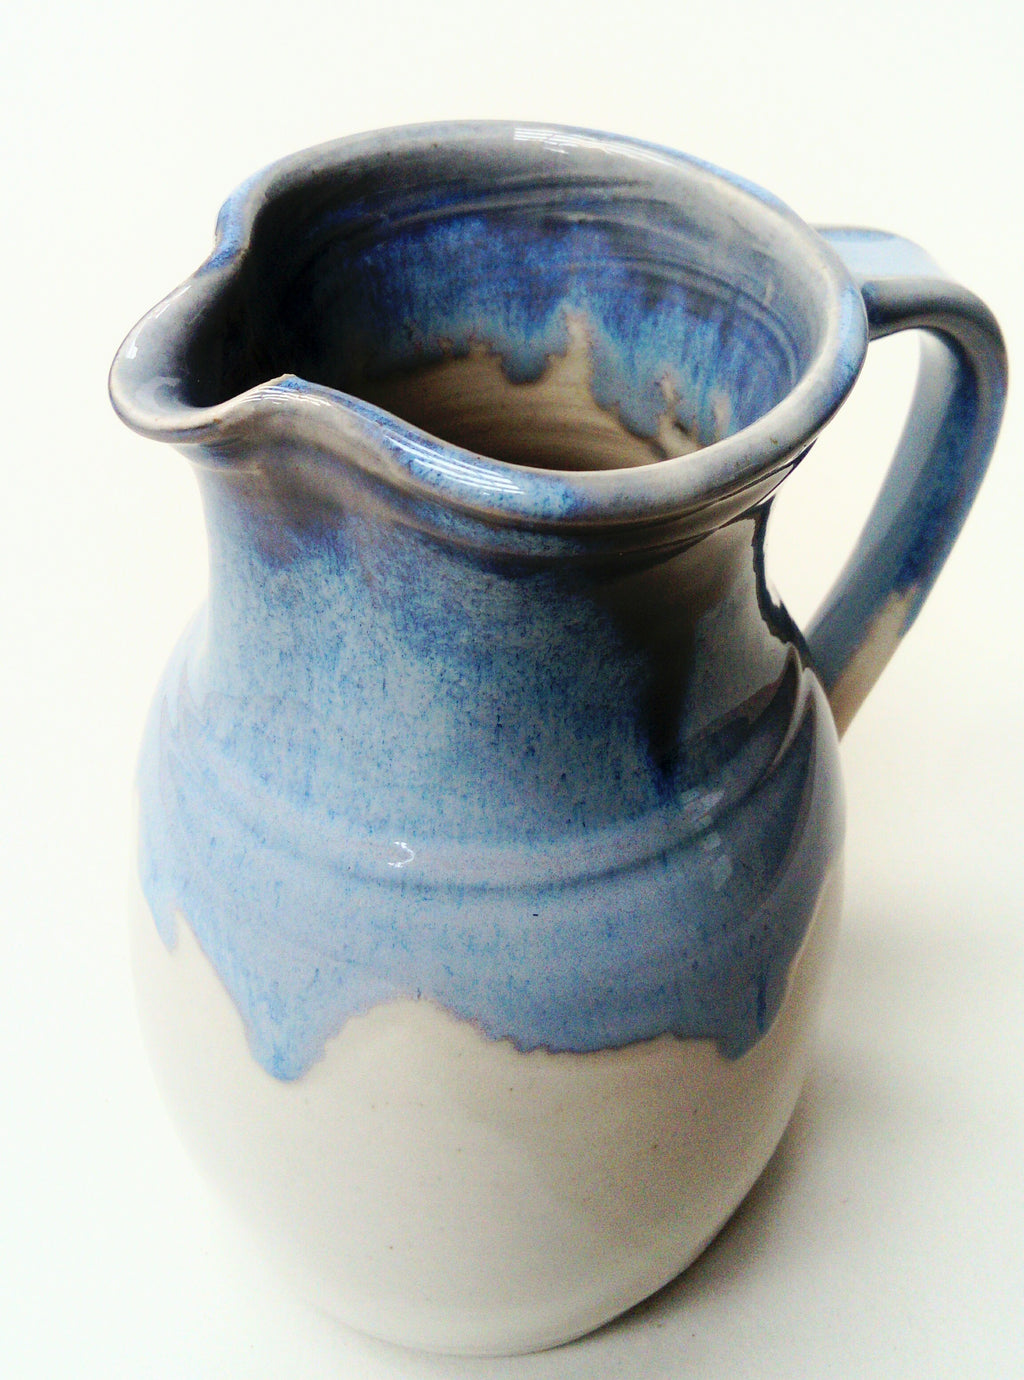 Large jug, blue and white stoneware glaze range.